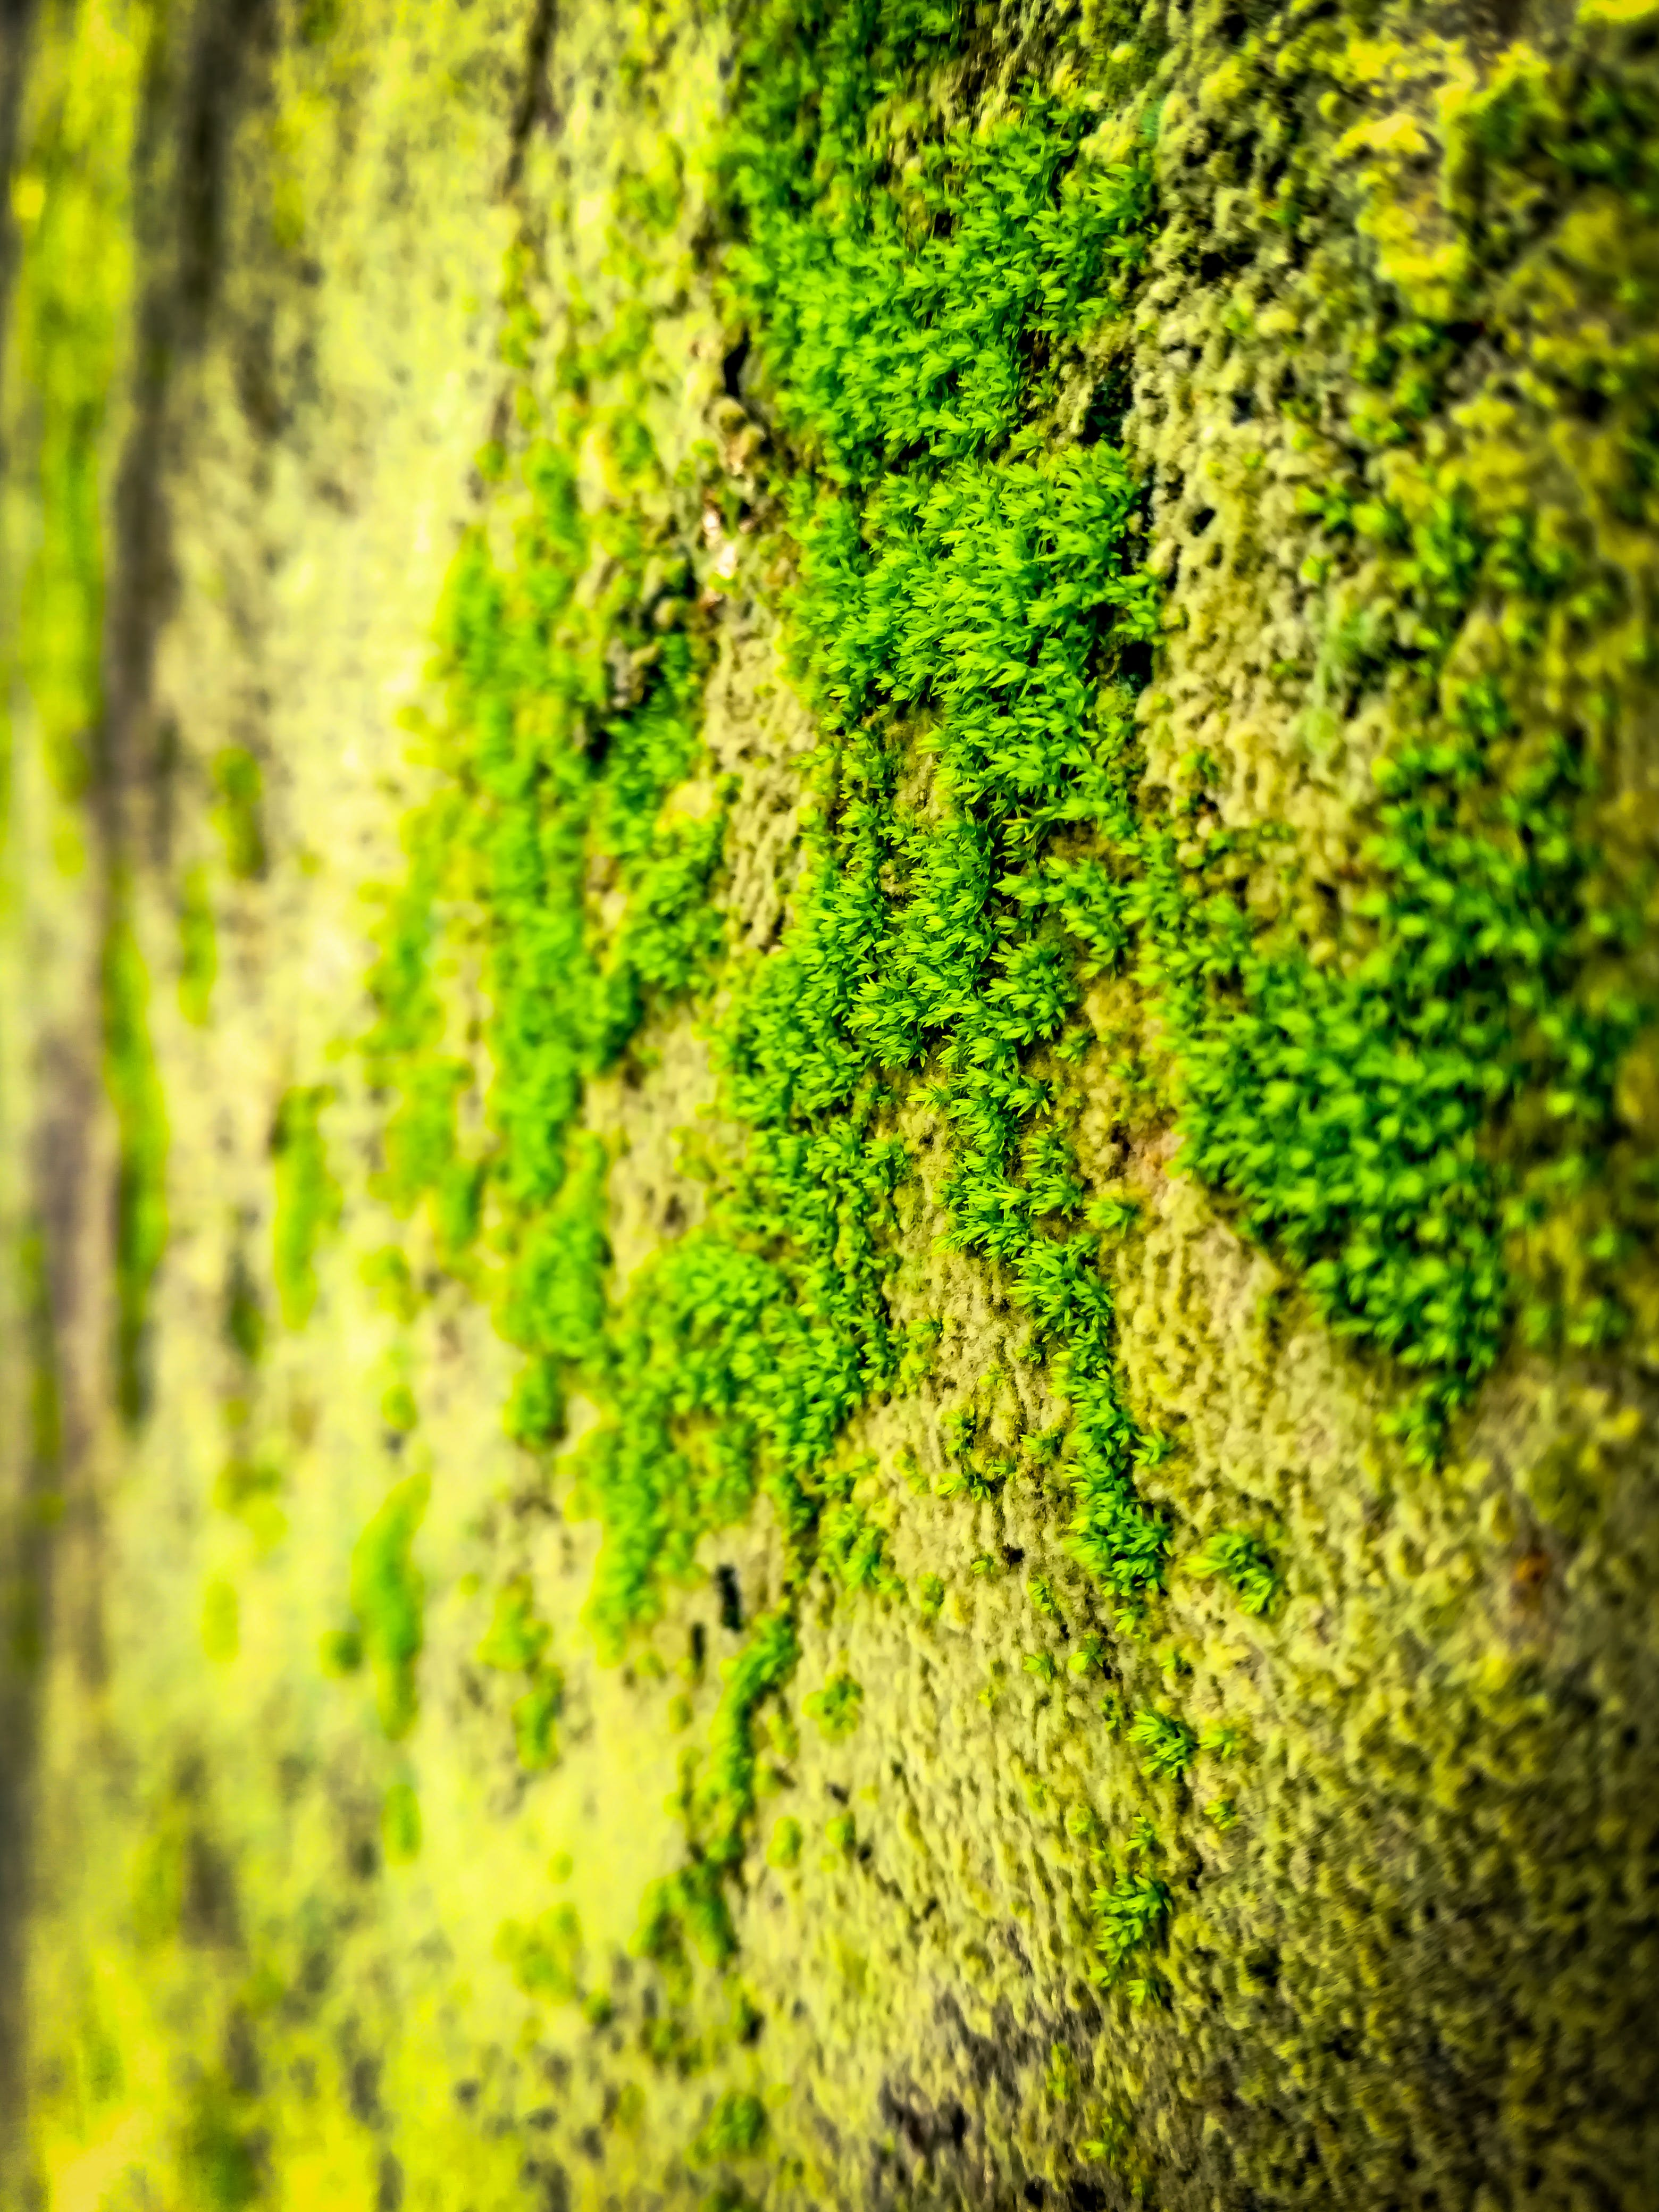 Free stock photo of fungal, green, nature, wall